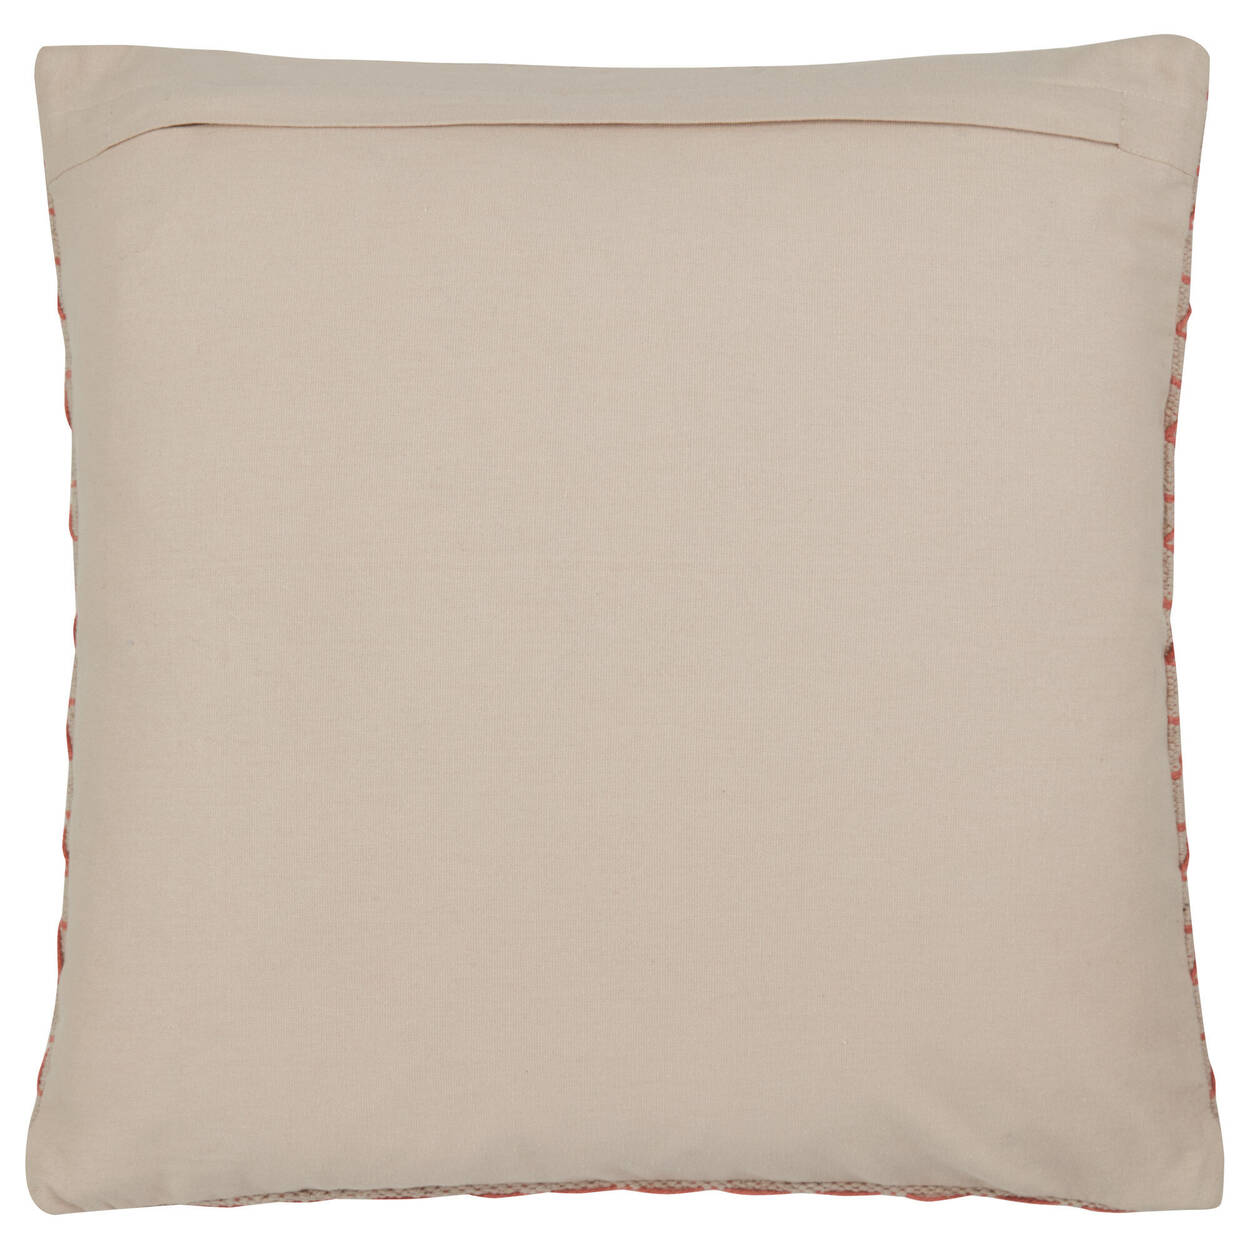 "Xoco Embroidered Decorative Pillow 19"" X 19"""